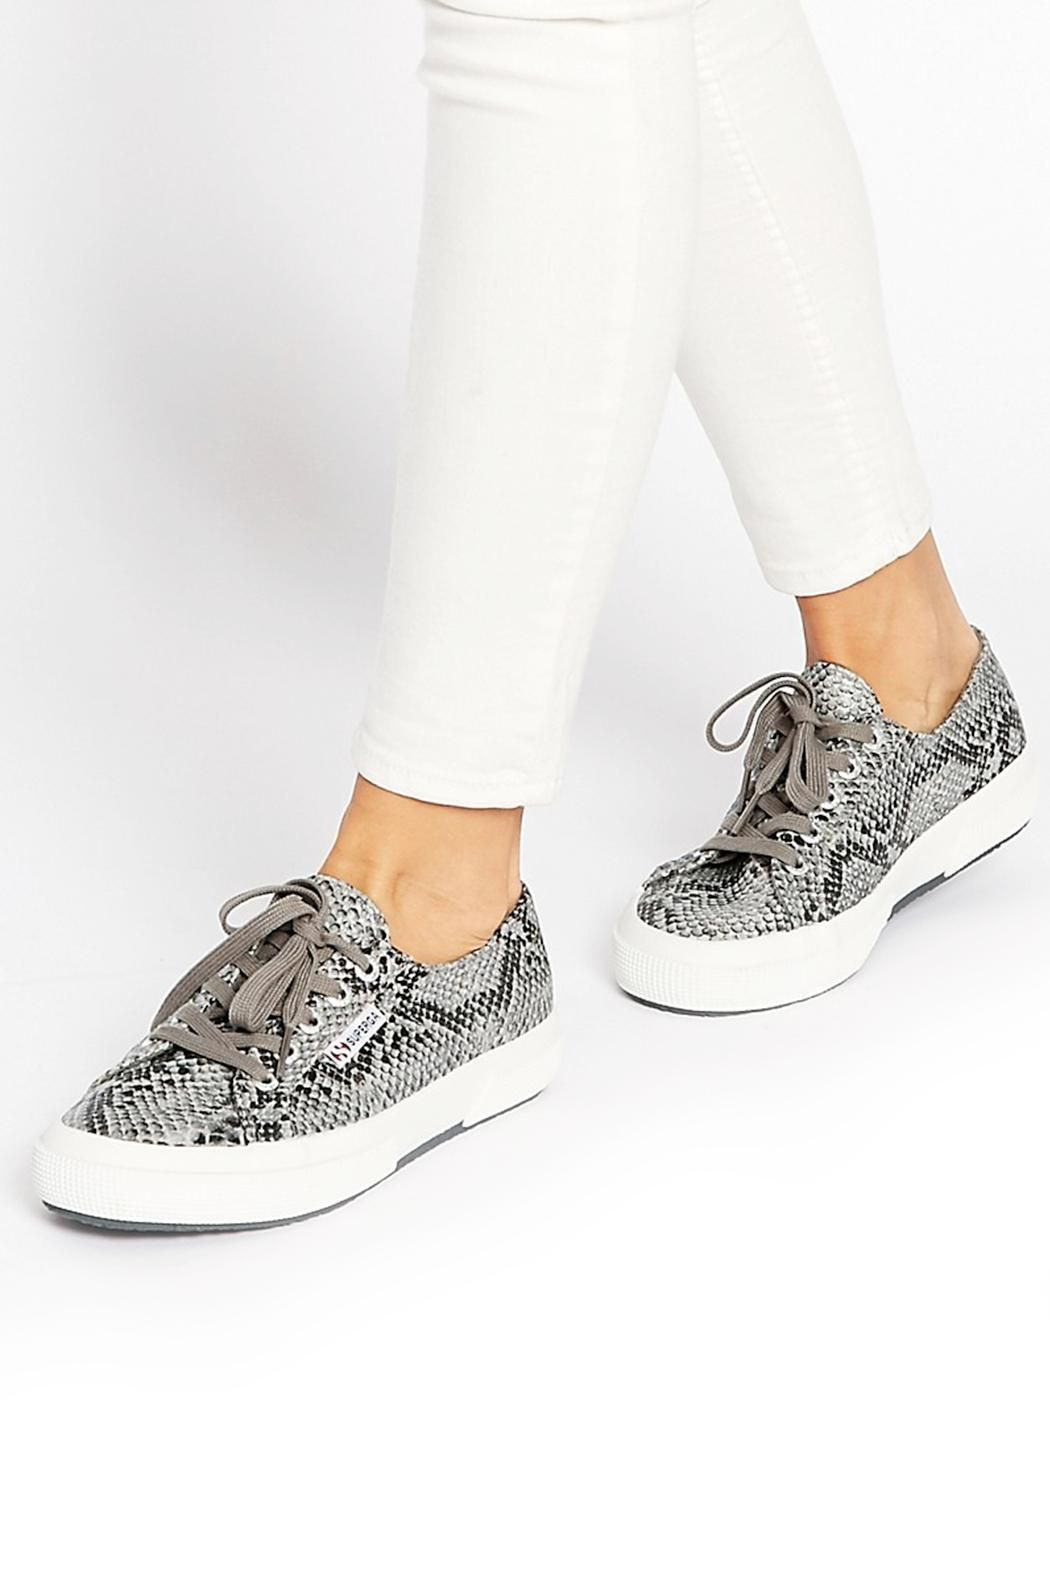 A classic low-top lace-up sneaker with a modern faux-leather snakeskin